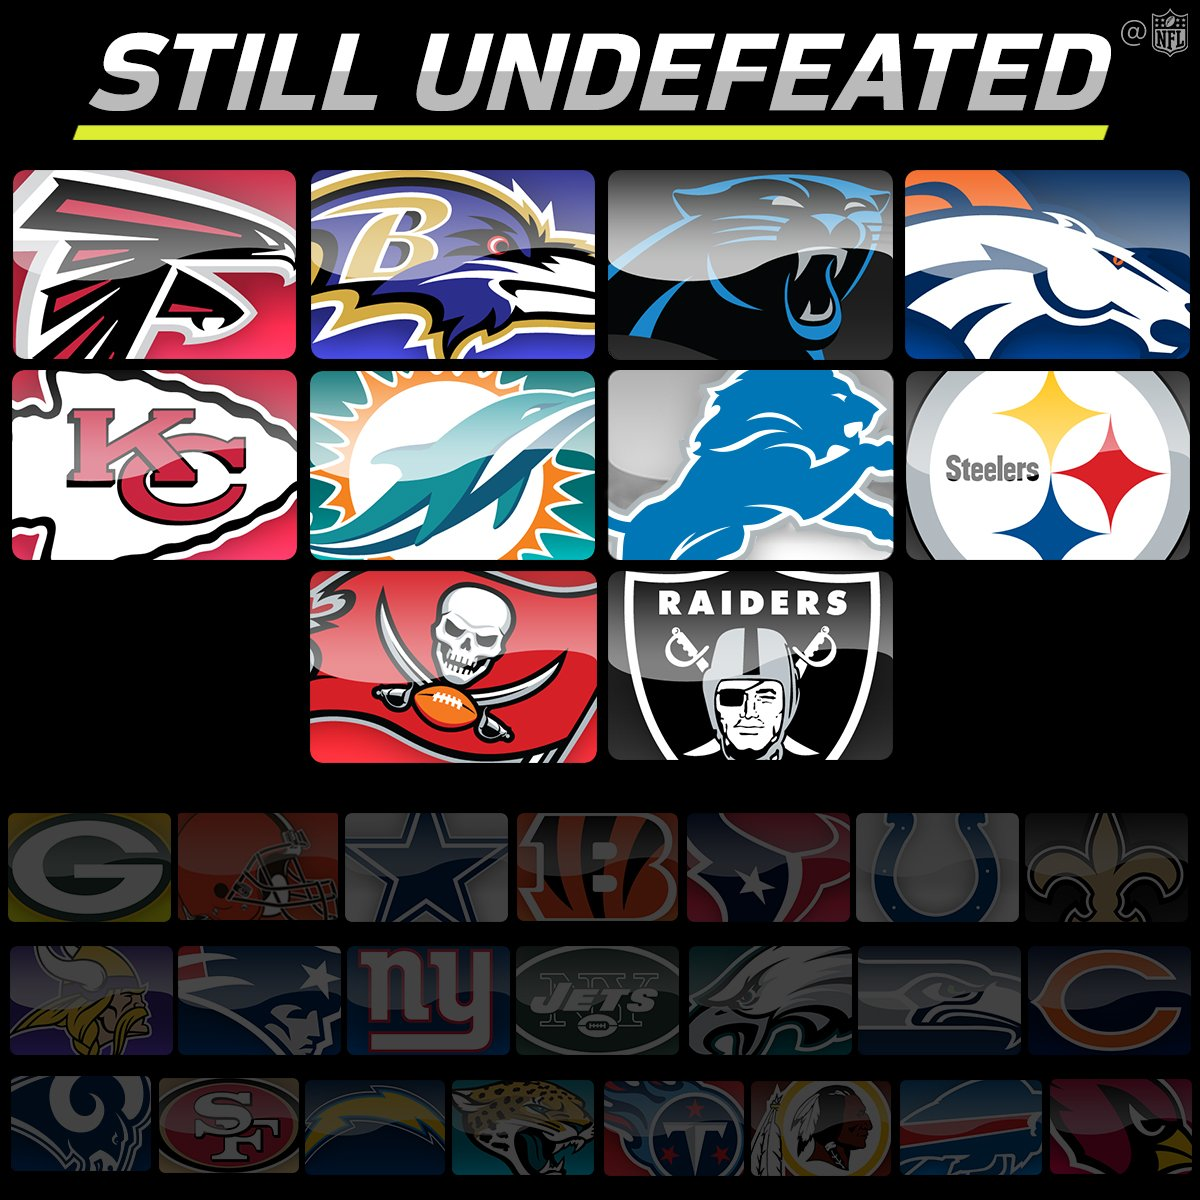 10 undefeated teams remain... https://t.co/XV5EYKokvr